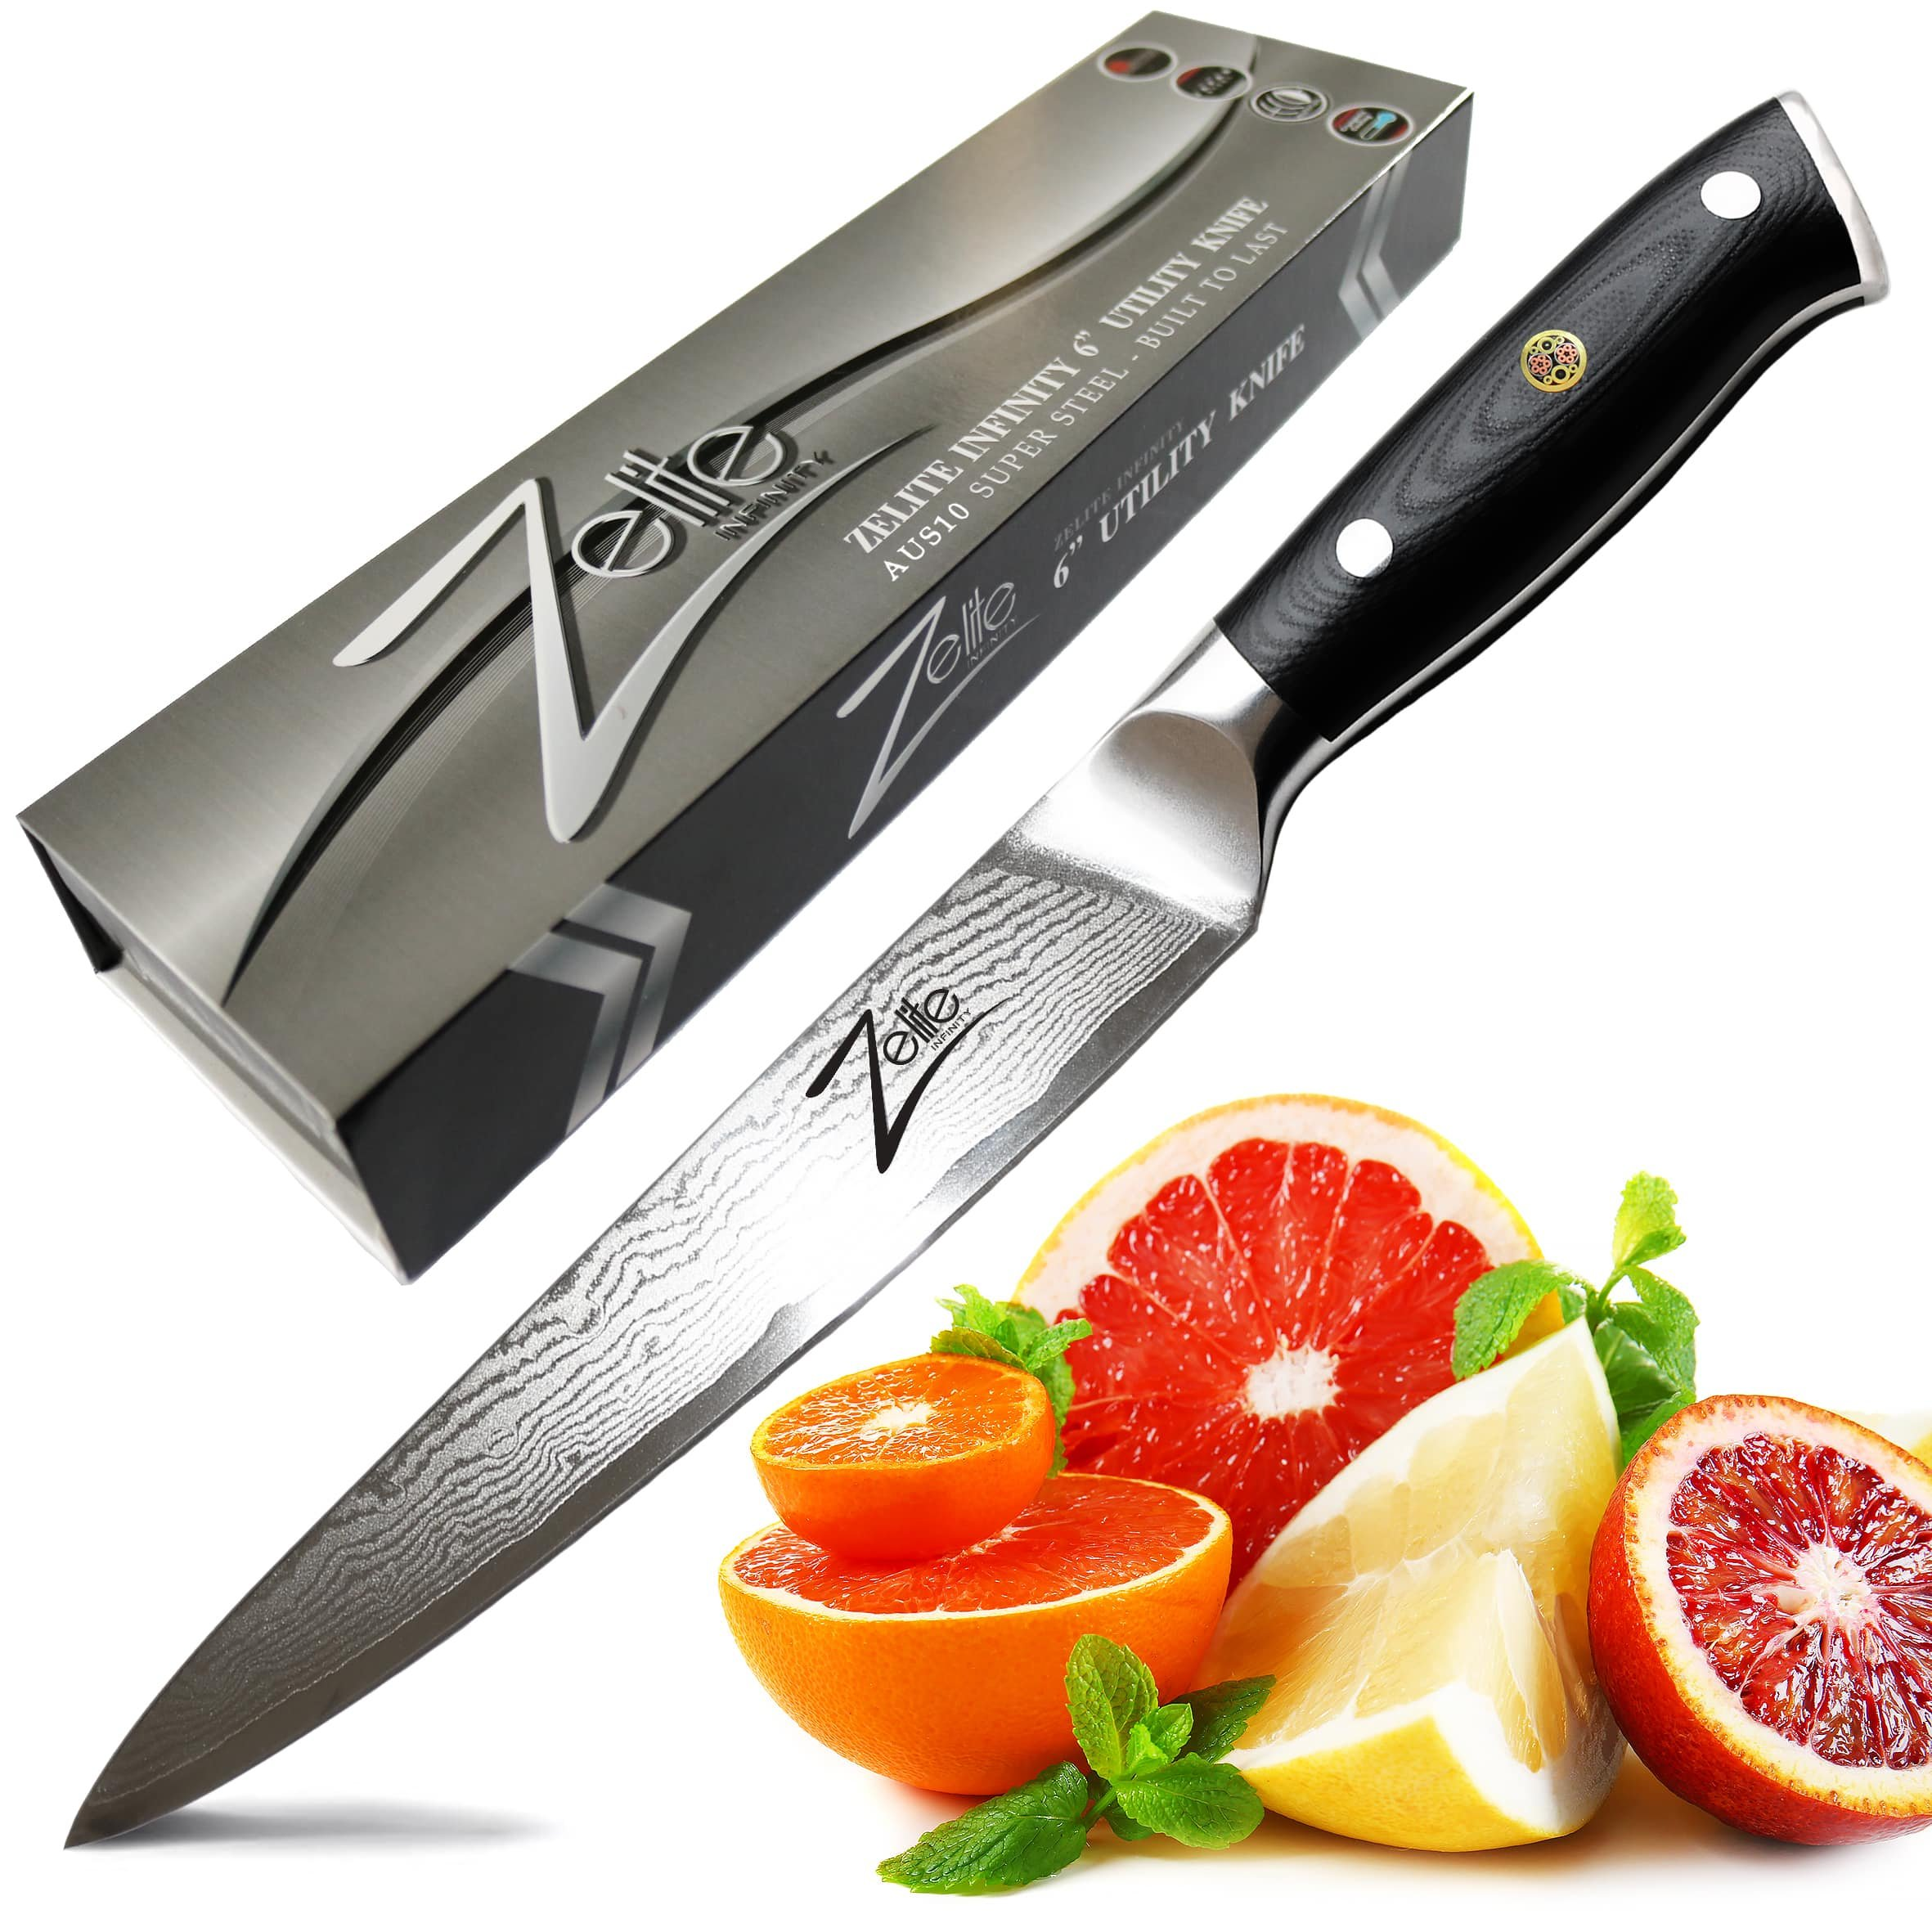 "ZELITE INFINITY Utility Knife 6"" - Alpha-Royal Series - Petty Knives - Best Quality Japanese AUS10 Super Steel 67 Layer High Carbon Stainless Steel - Razor Sharp, Superb Edge Retention Chef Blade by Zelite Infinity"